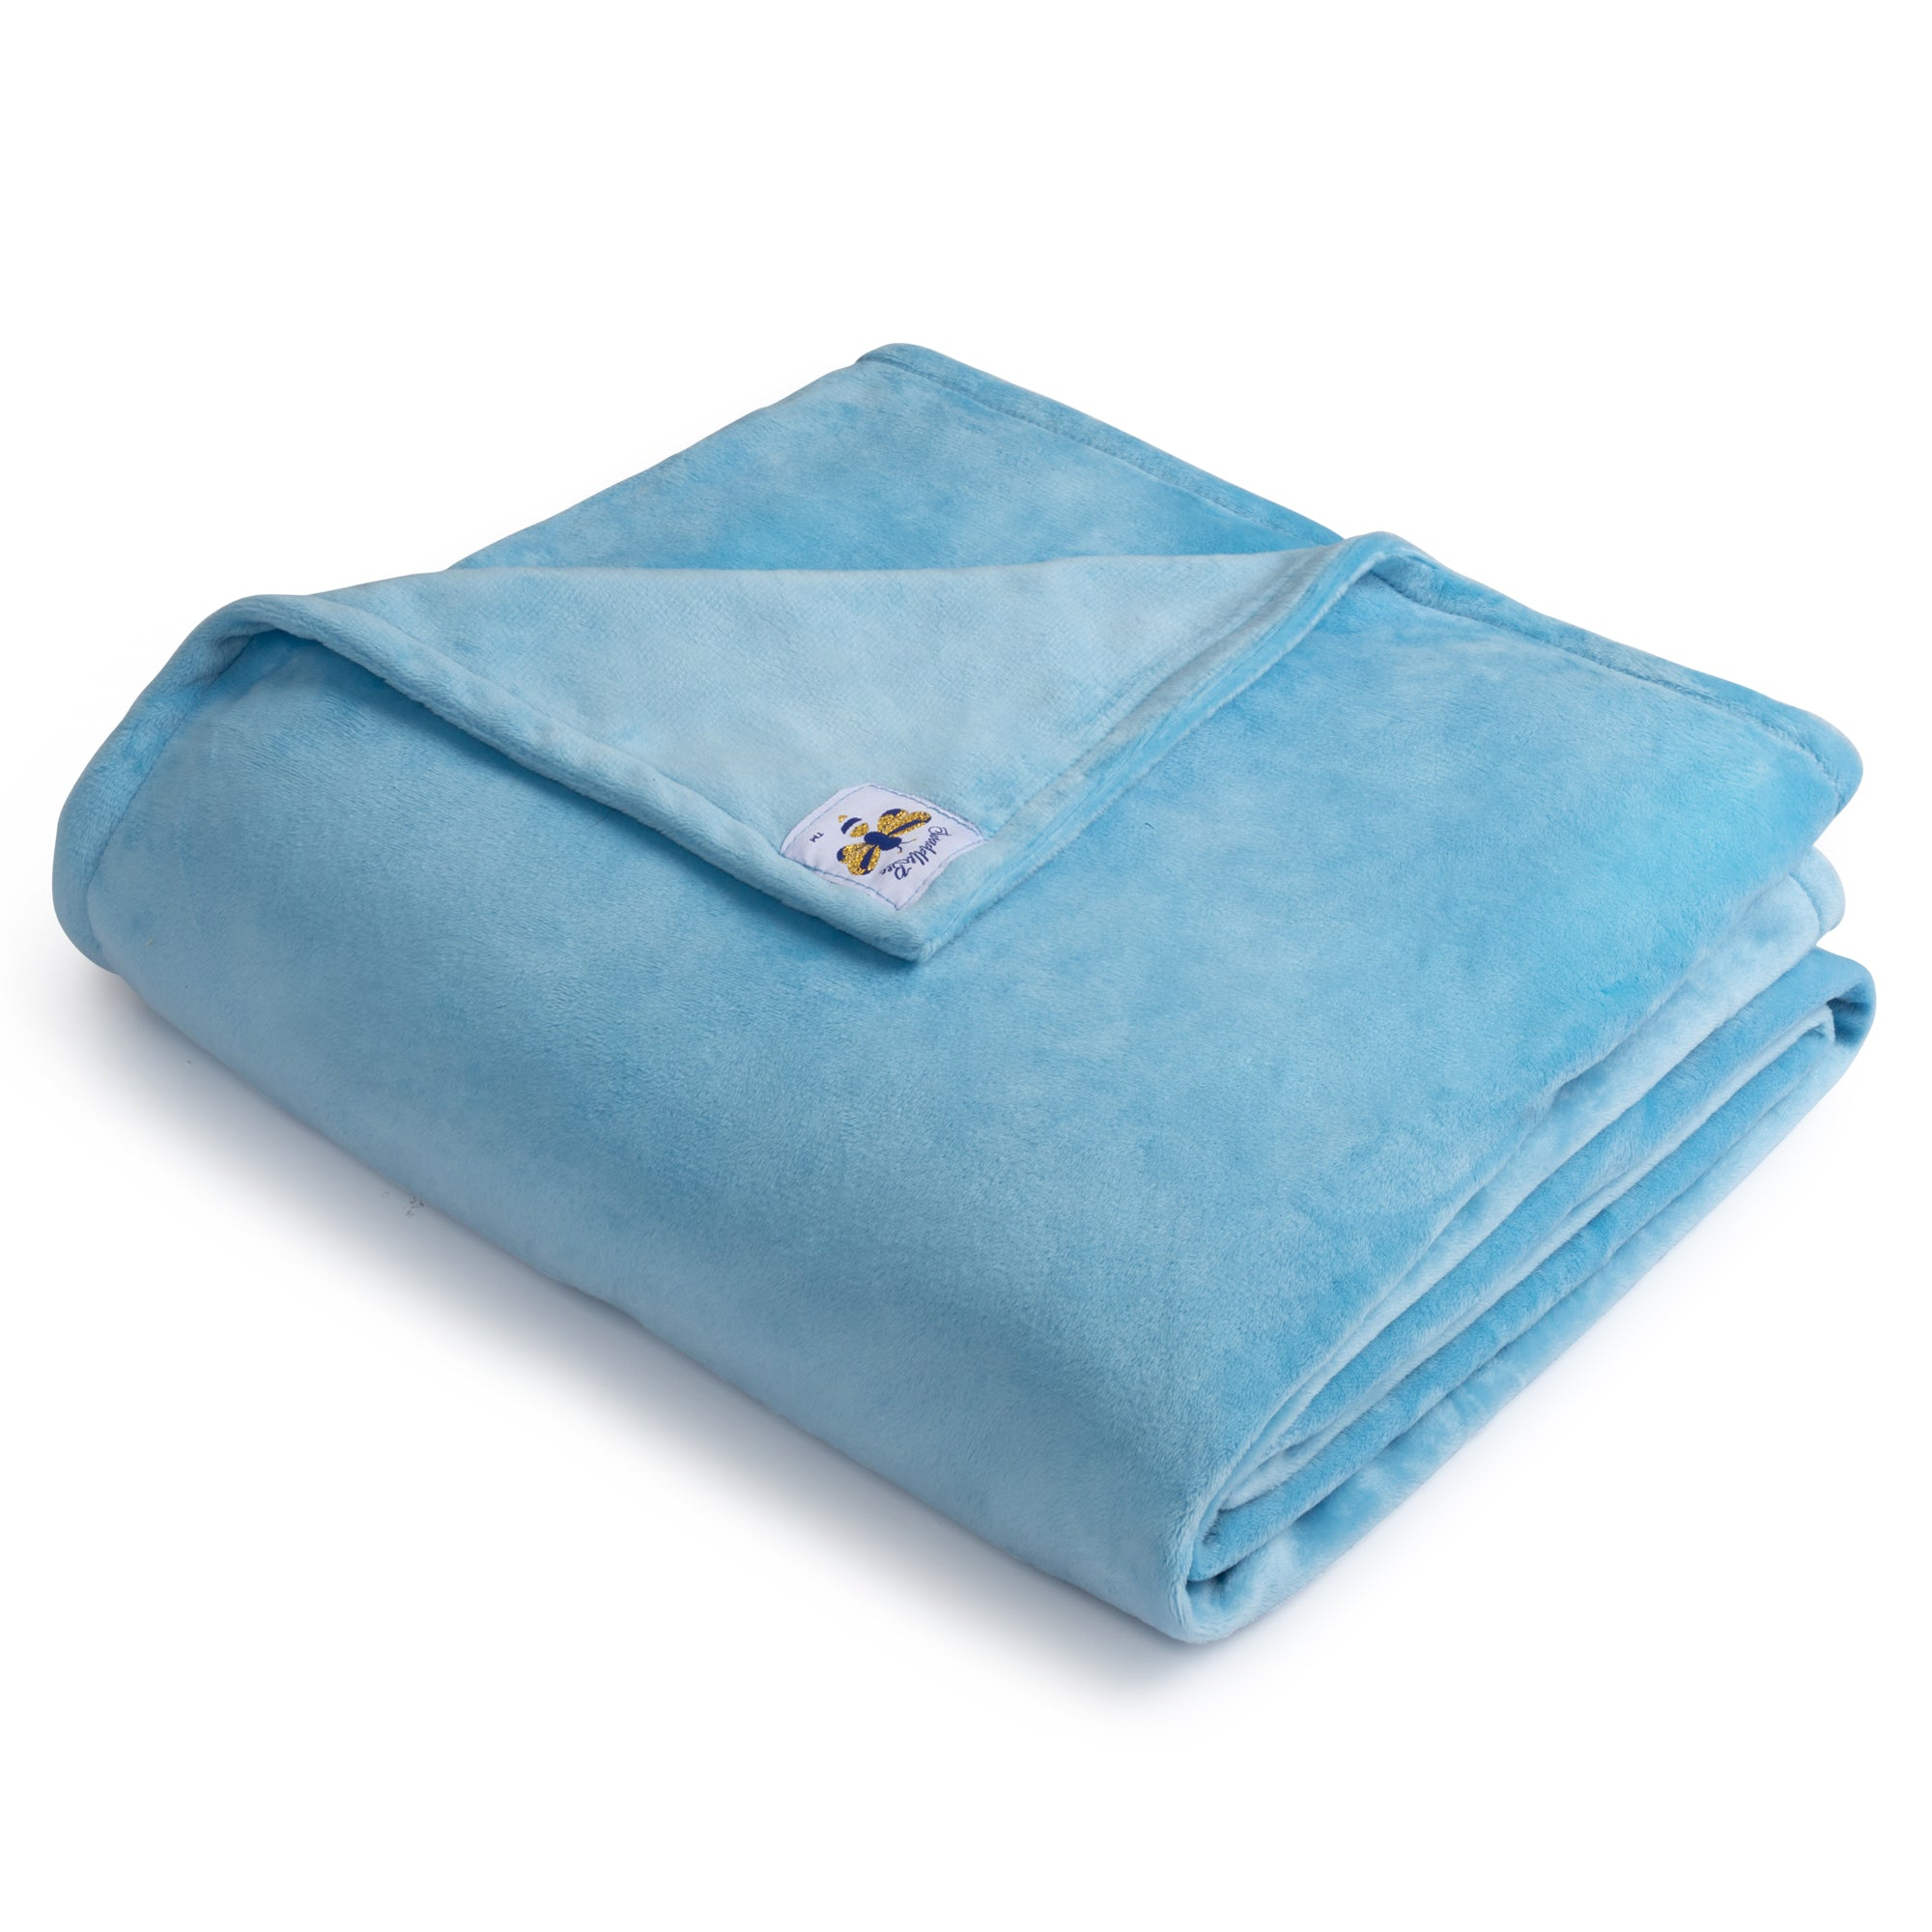 BiggerBee Minky Throw Blanket Sky Blue **LIMITED EDITION**